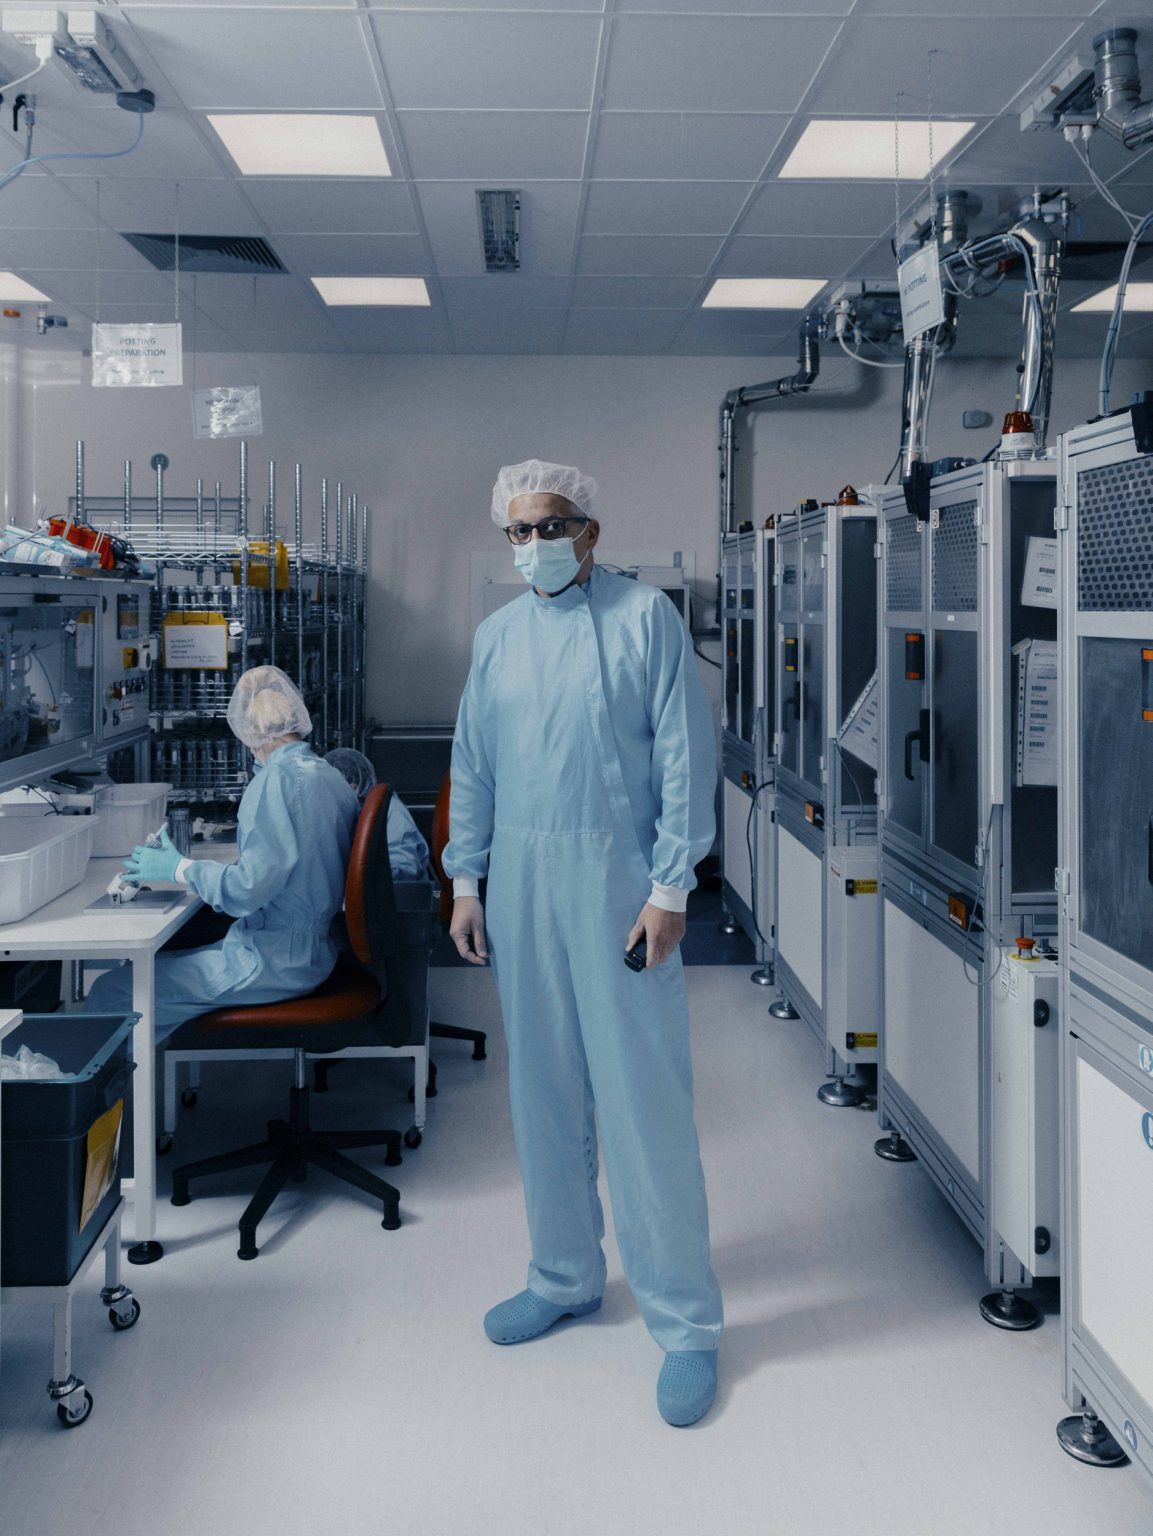 Inside Eurosets in Medolla, Modena. Eurosets produces extracorporeal pulmonary appliances. The only Italian company to manufacture these appliances that reproduce the work of pulmonary alveolus and artificially generate the carbon dioxide-oxygen exchange, putting the lungs to complete rest. Eurosets went from  producing 300 to 1200 oxygenators in a month. Almost all 130 employees moved to its production line. In this image: Giovanni Gelati, Head of the Oxigenator department. Italy, April, 2020